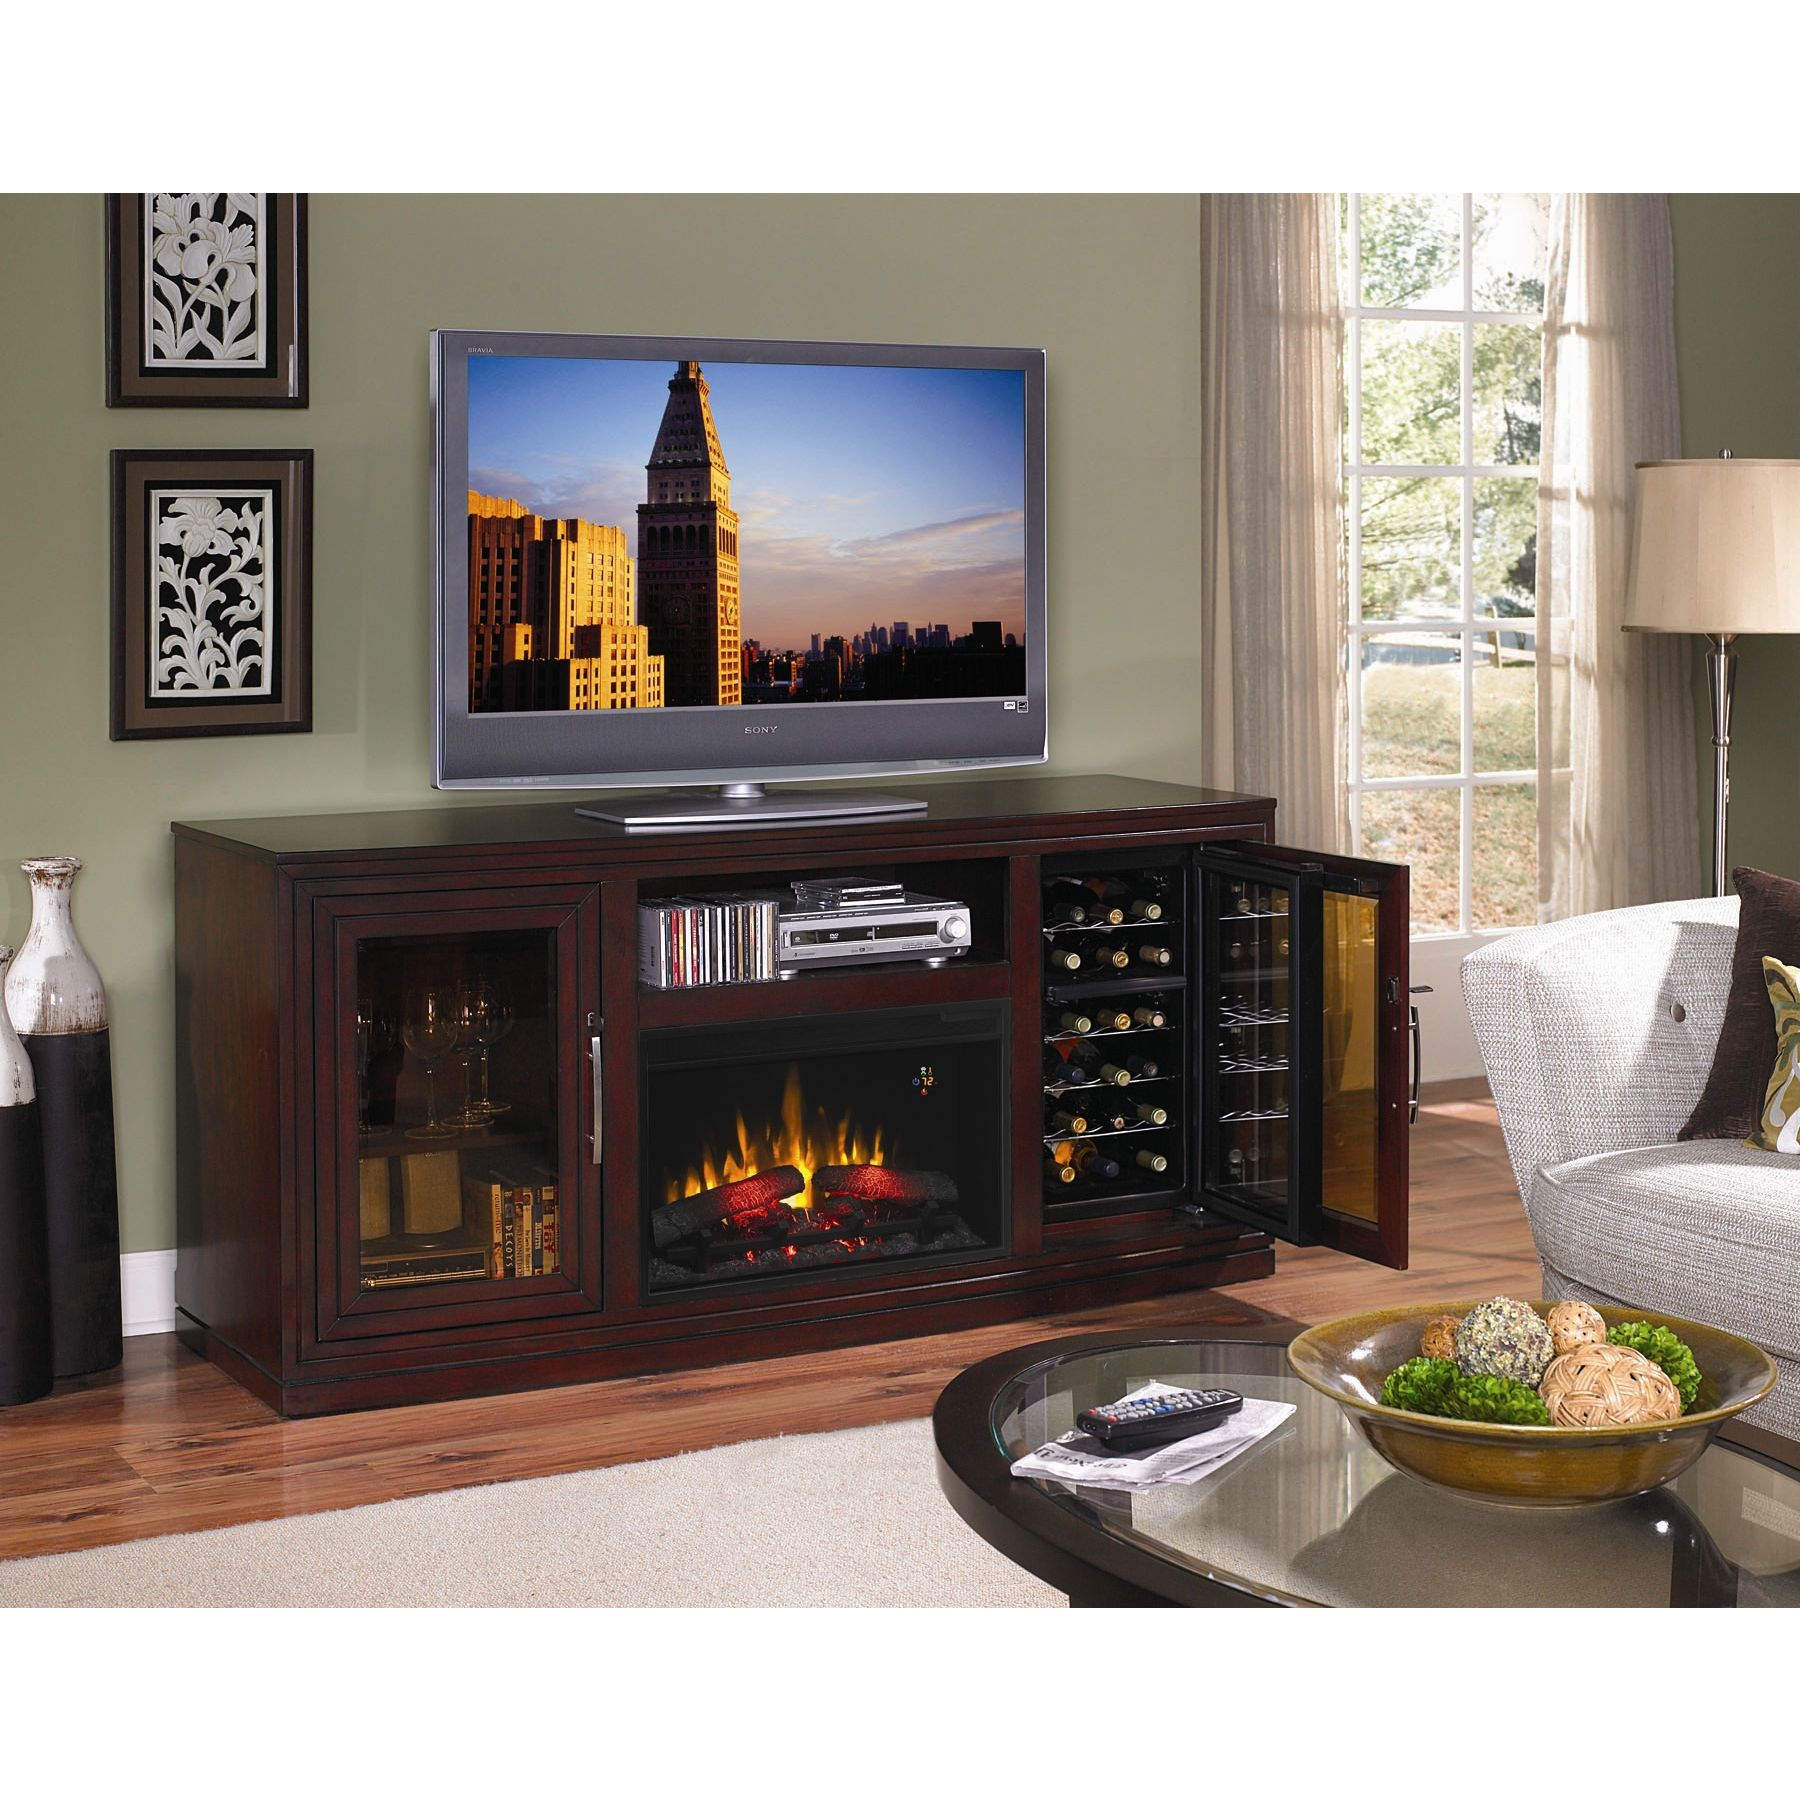 Tv Stand, Fireplace, Wine Rack | For The Home In 2019 | Pinterest In Kenzie 72 Inch Open Display Tv Stands (View 14 of 30)